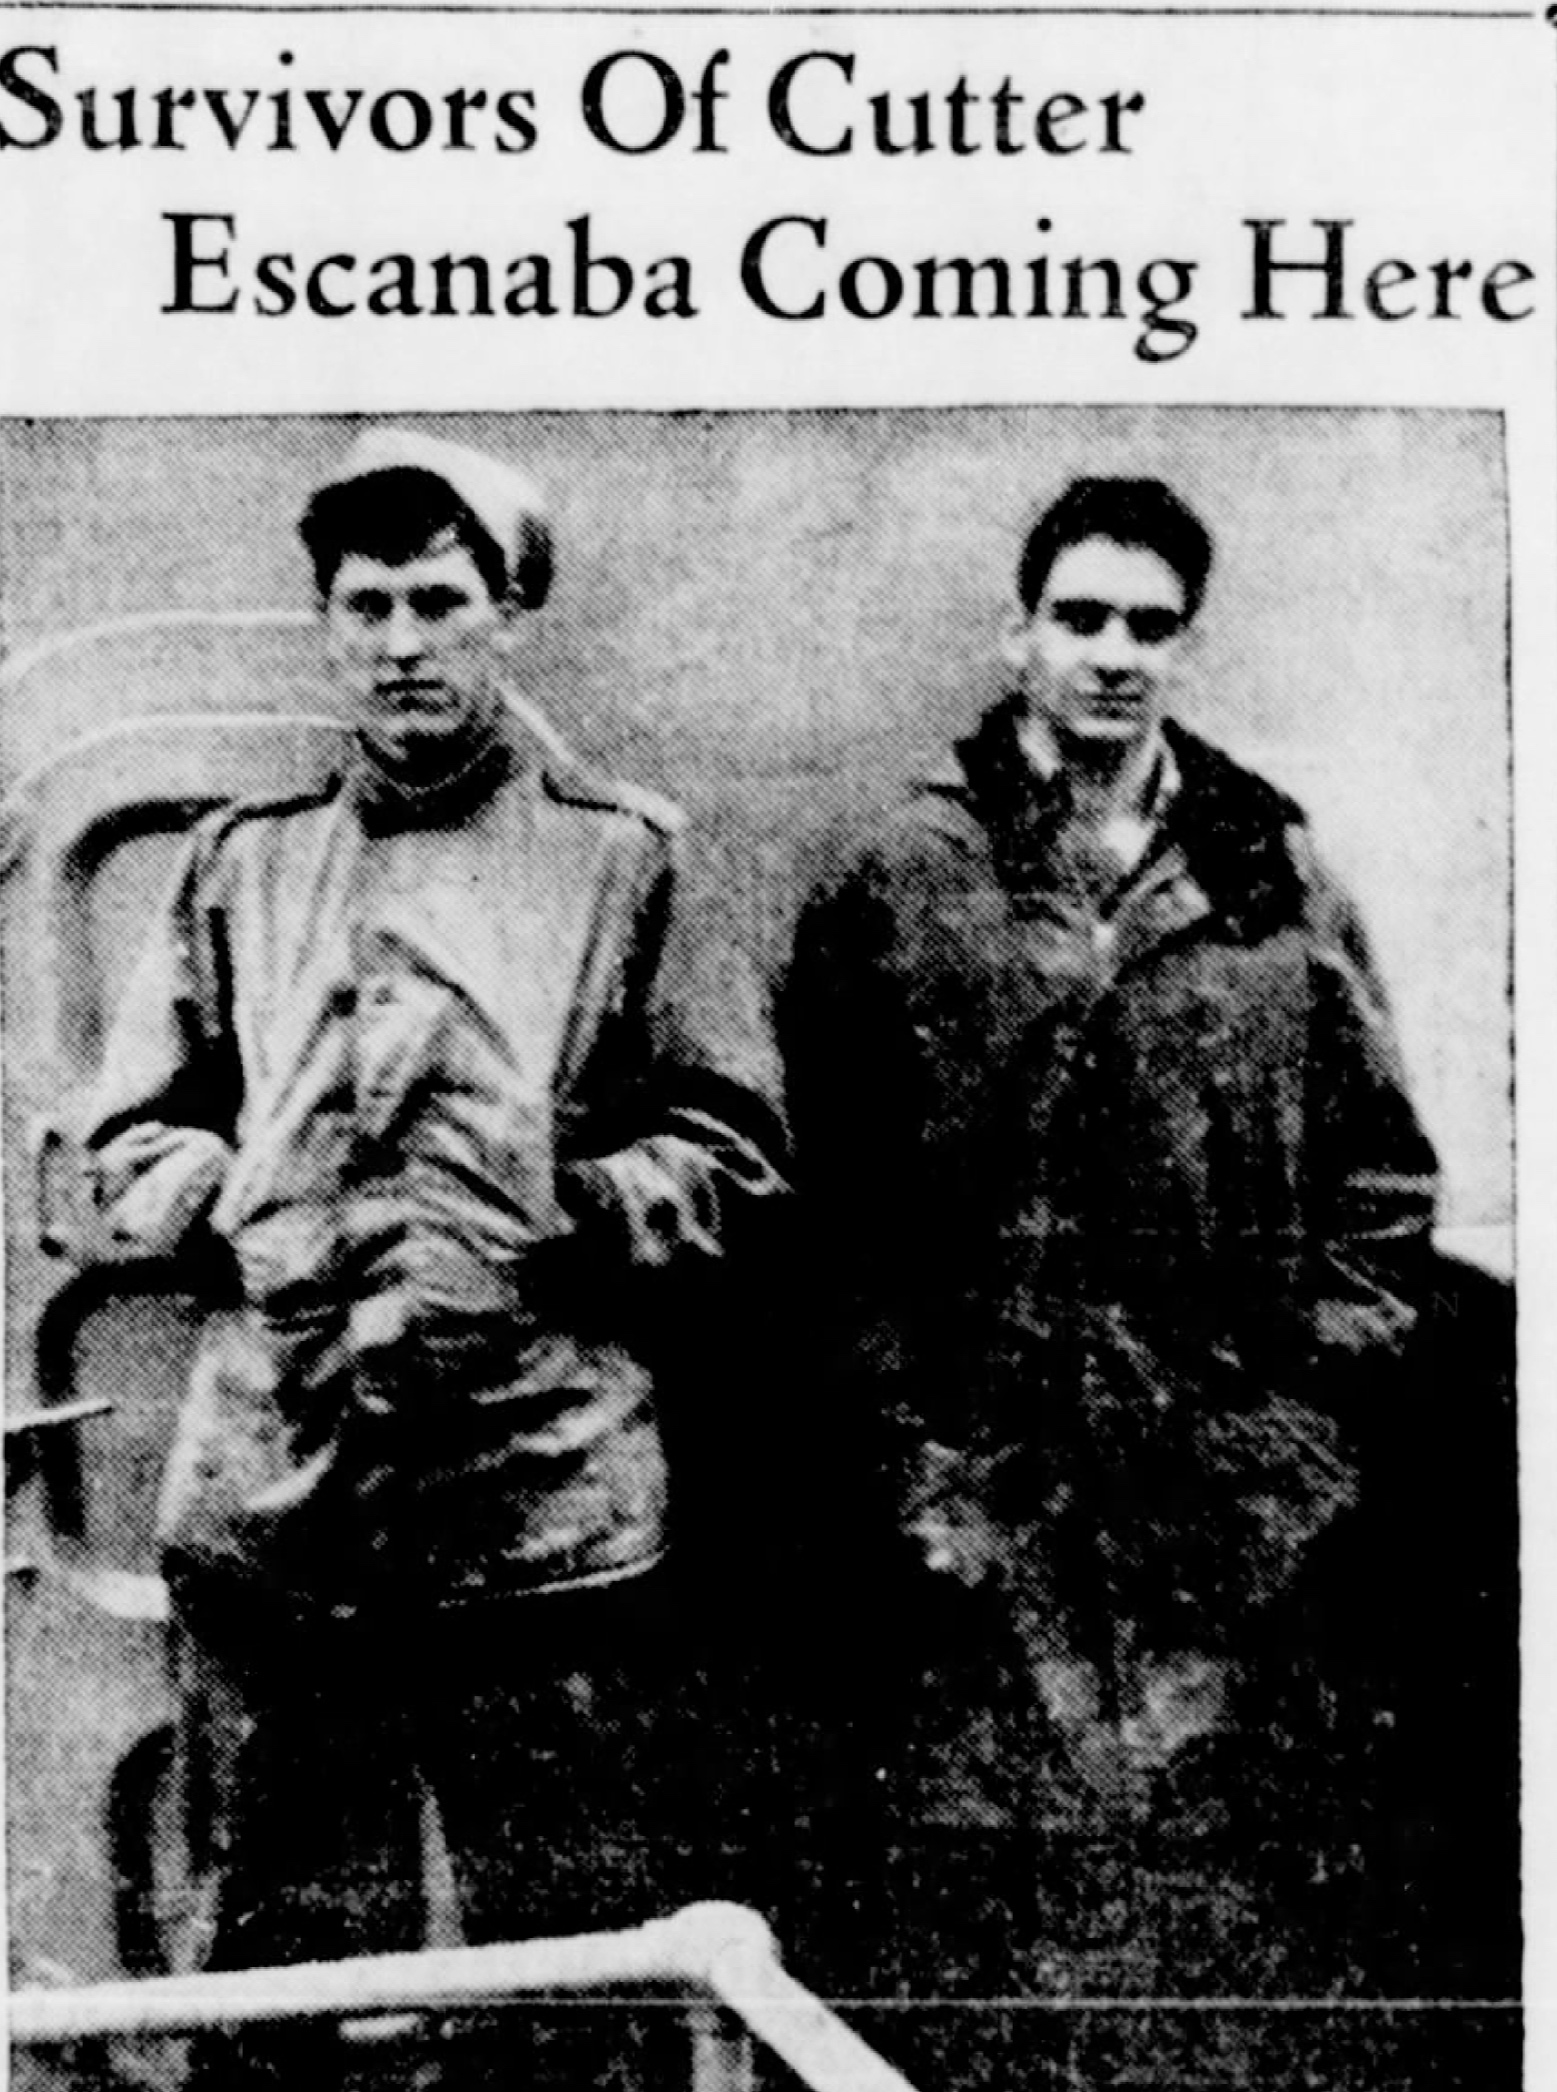 Melvin Baldwin and Ray O'Malley survived the sinking of the Escanaba